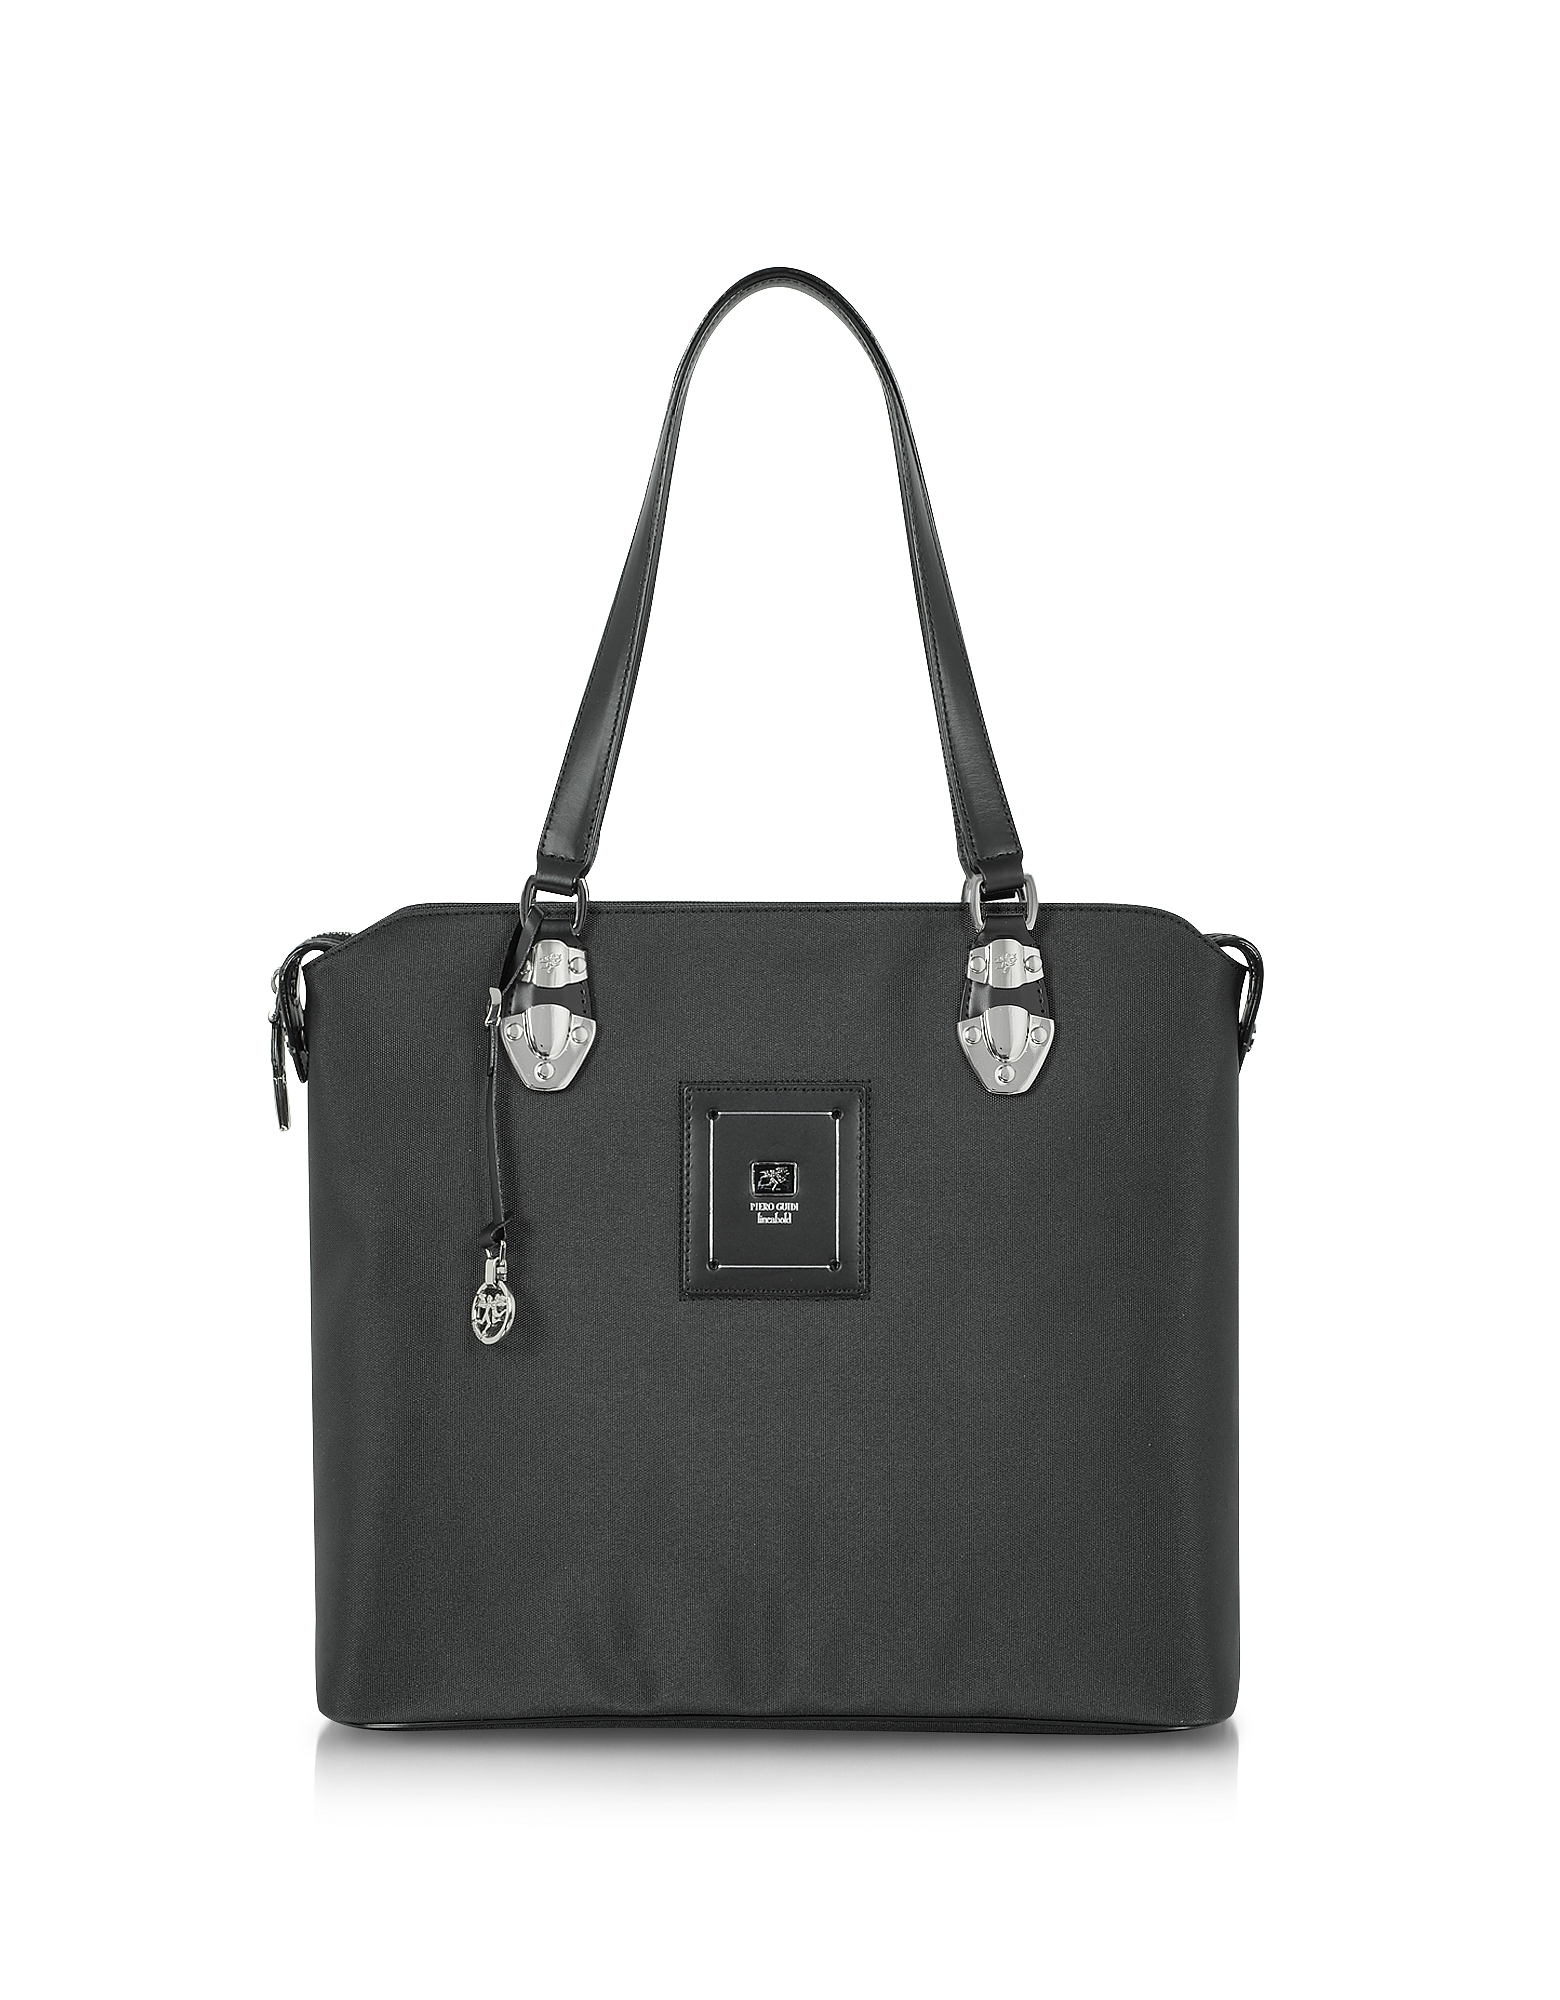 Piero Guidi Designer Handbags, Linea Bold - Black Canvas Tote